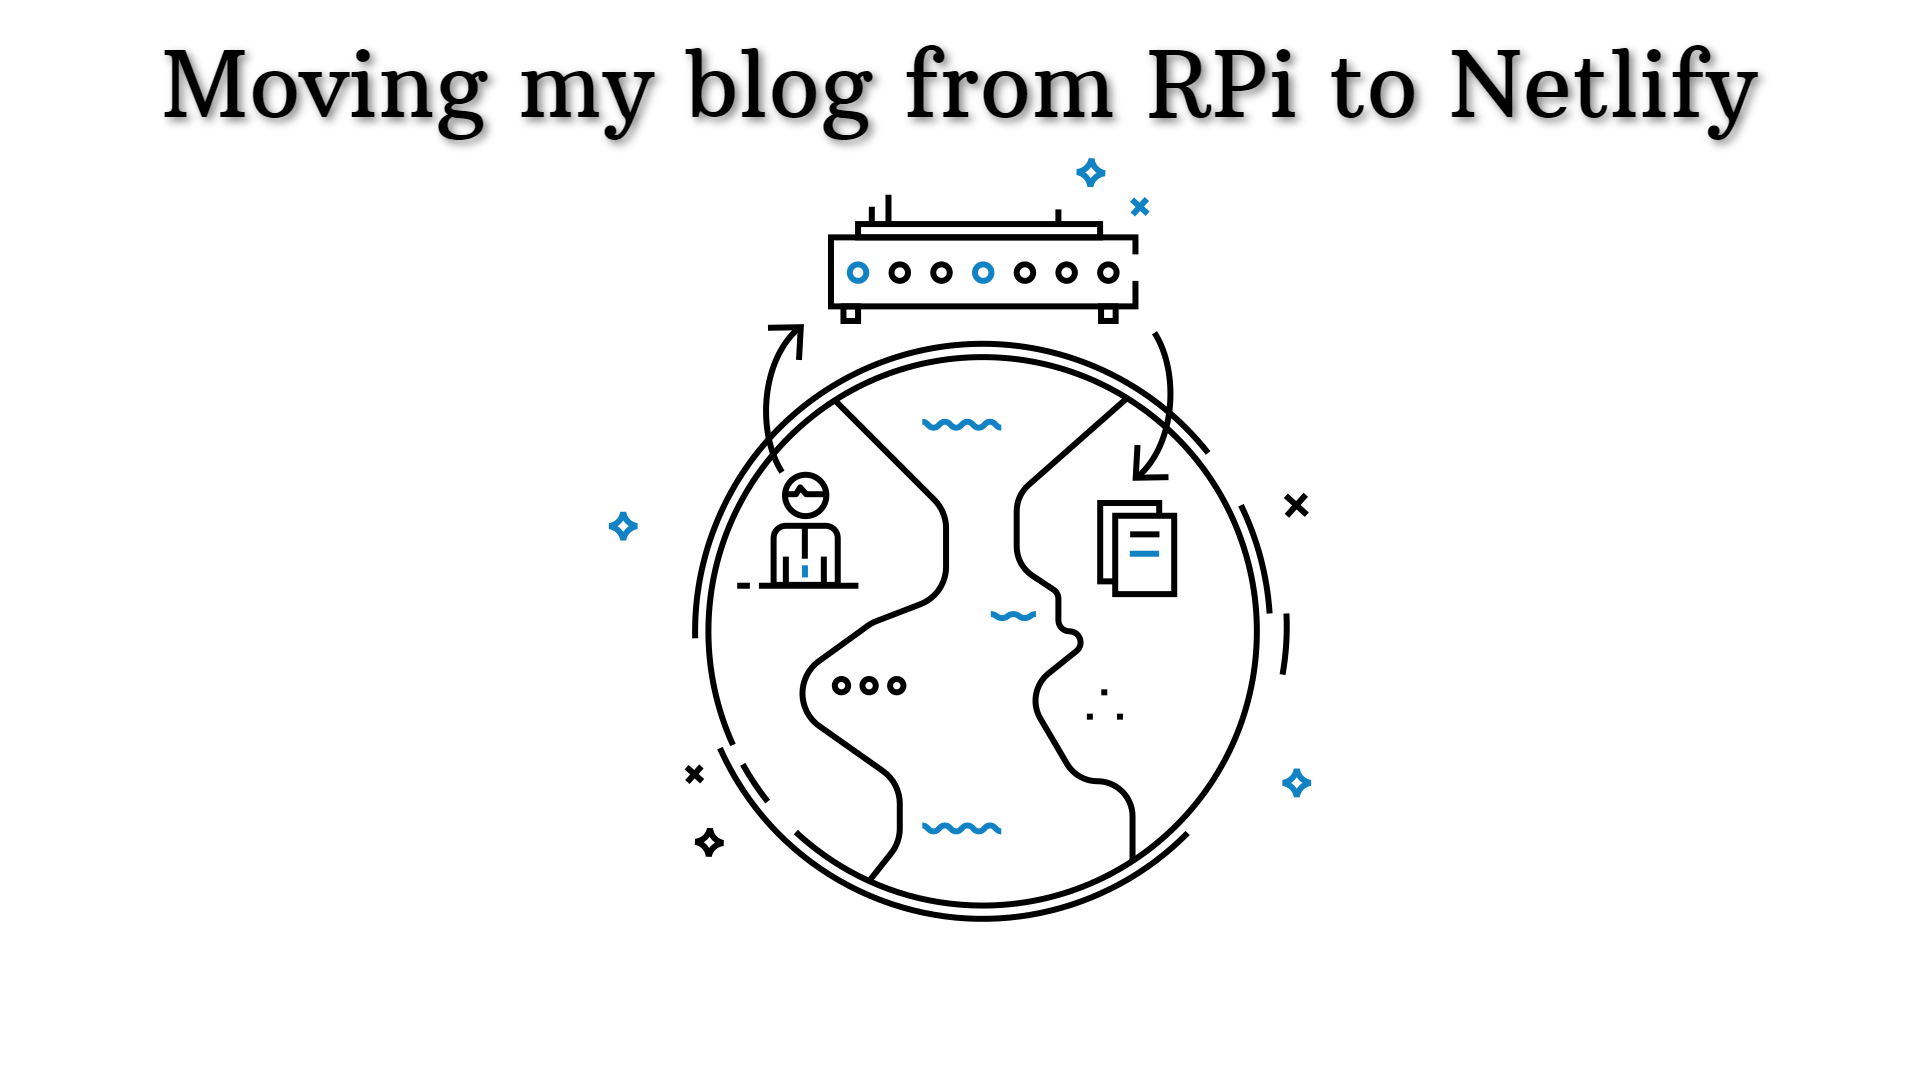 Moving my blog from RPi to Netlify